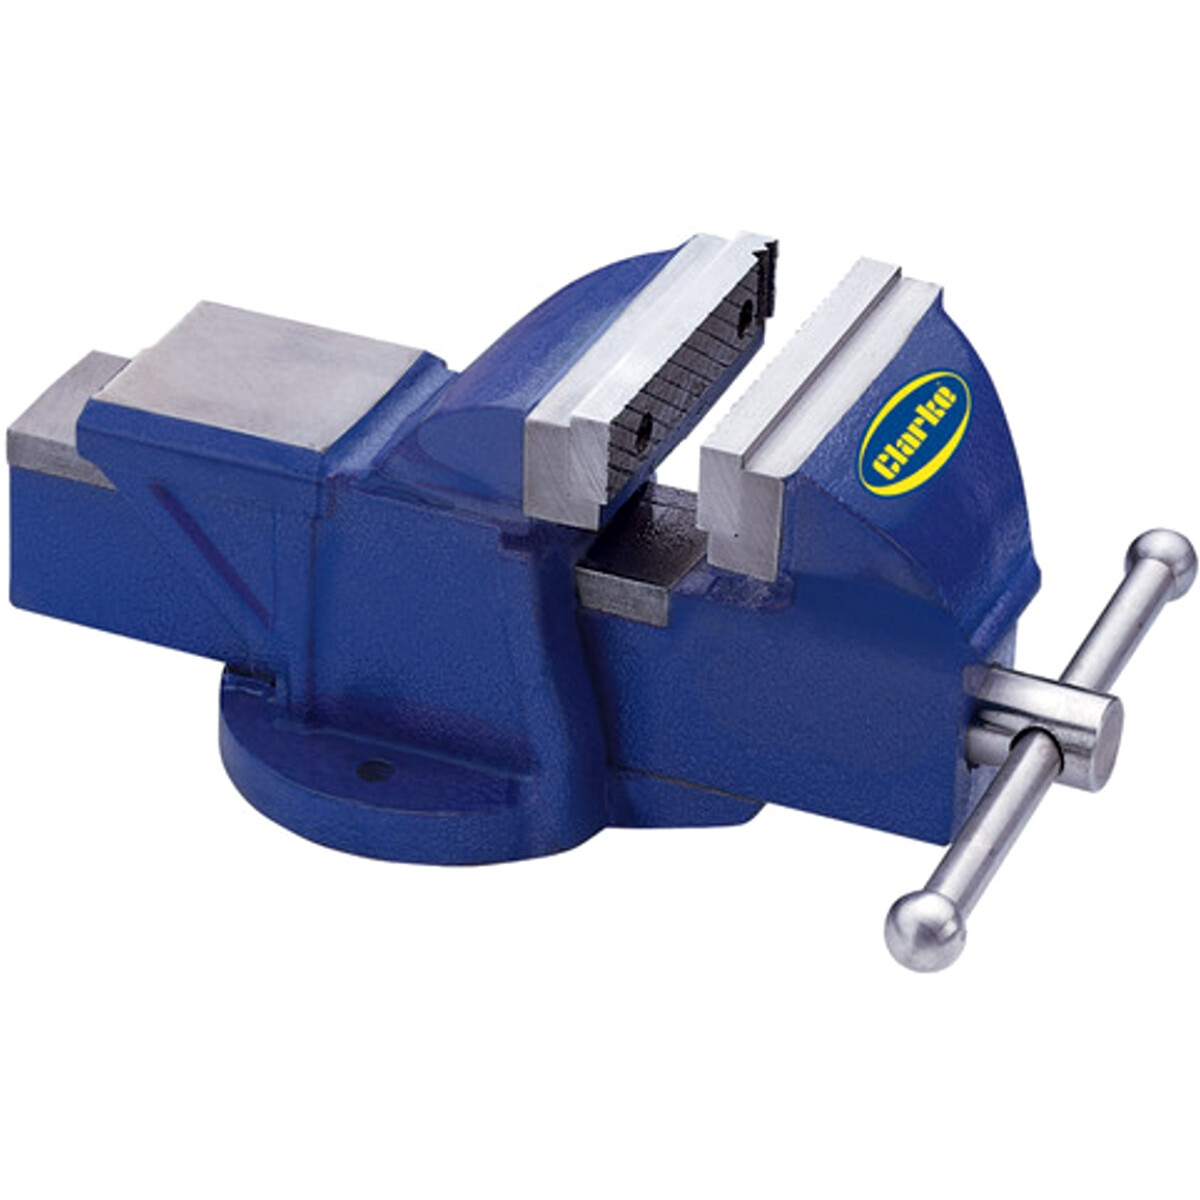 Clarke CV125BL 125mm Fixed Base Bench Vice 6504100